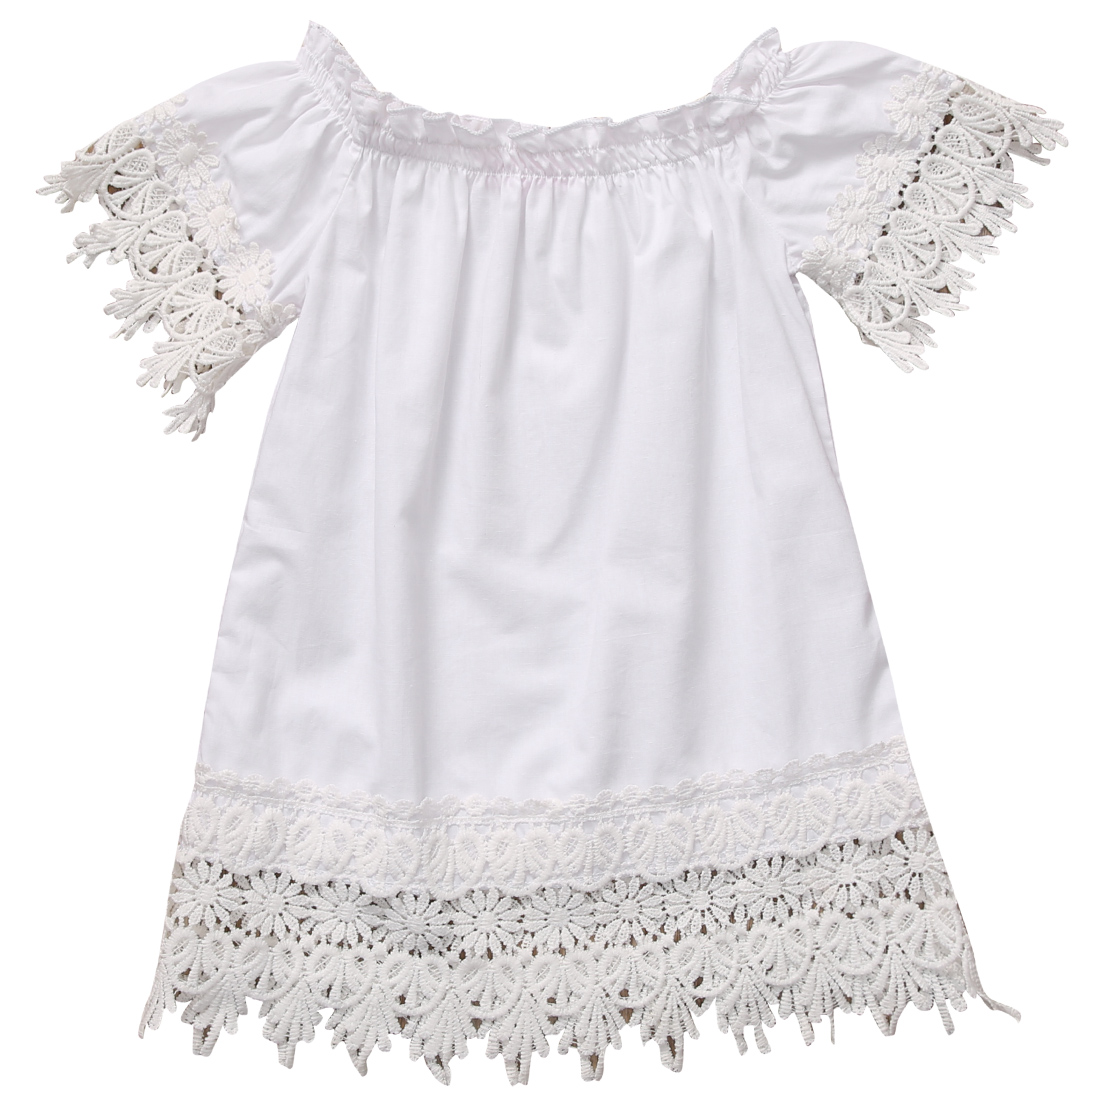 Kids Baby Girls Clothes Dresses Princess Party Lace Top Casual Sundress White Brief Costume Dress Girl New Summer 2016 new kids baby girls white chic fairy lace floral party solid gown fancy dresses baby summer casual dress clothes